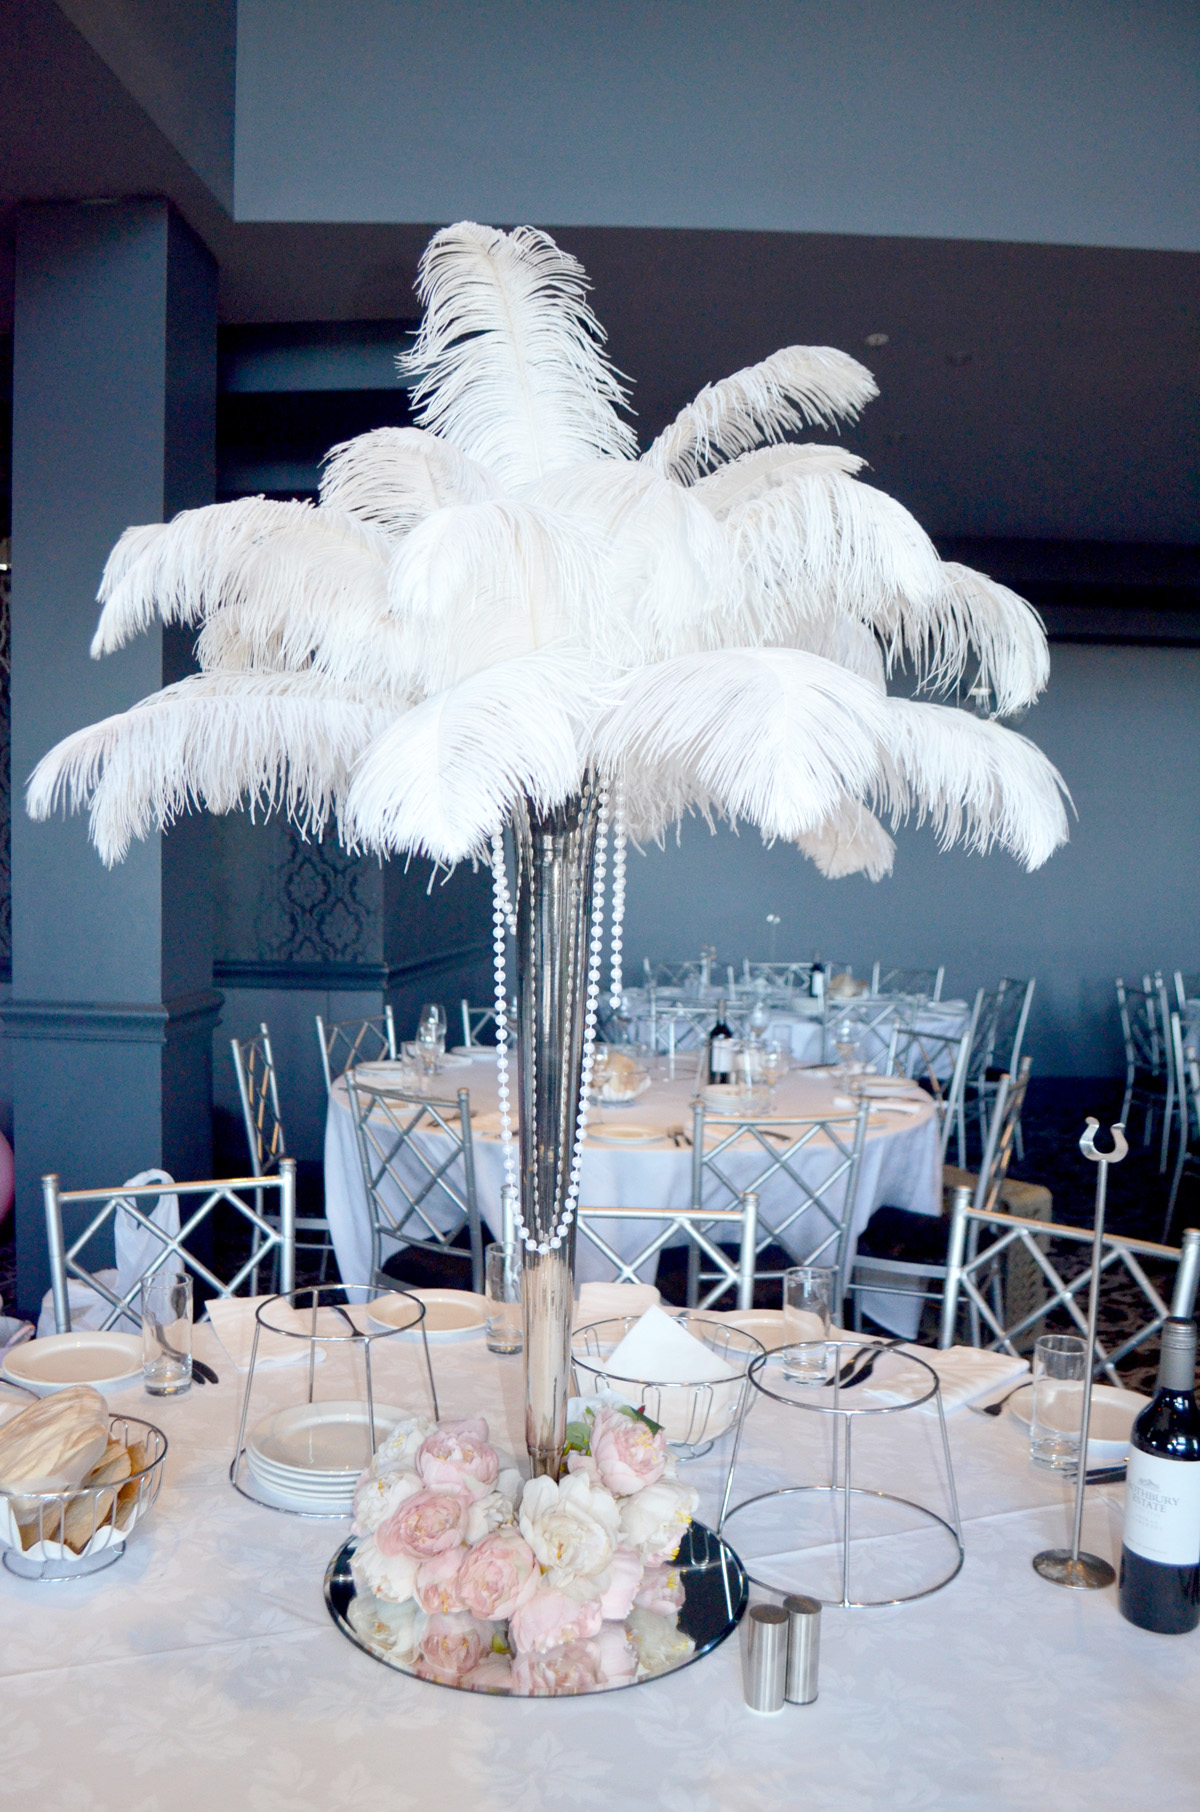 Silver vase with white ostrich feathers and artificial peonys silver vase with white ostrich feathers and artificial peonys reviewsmspy